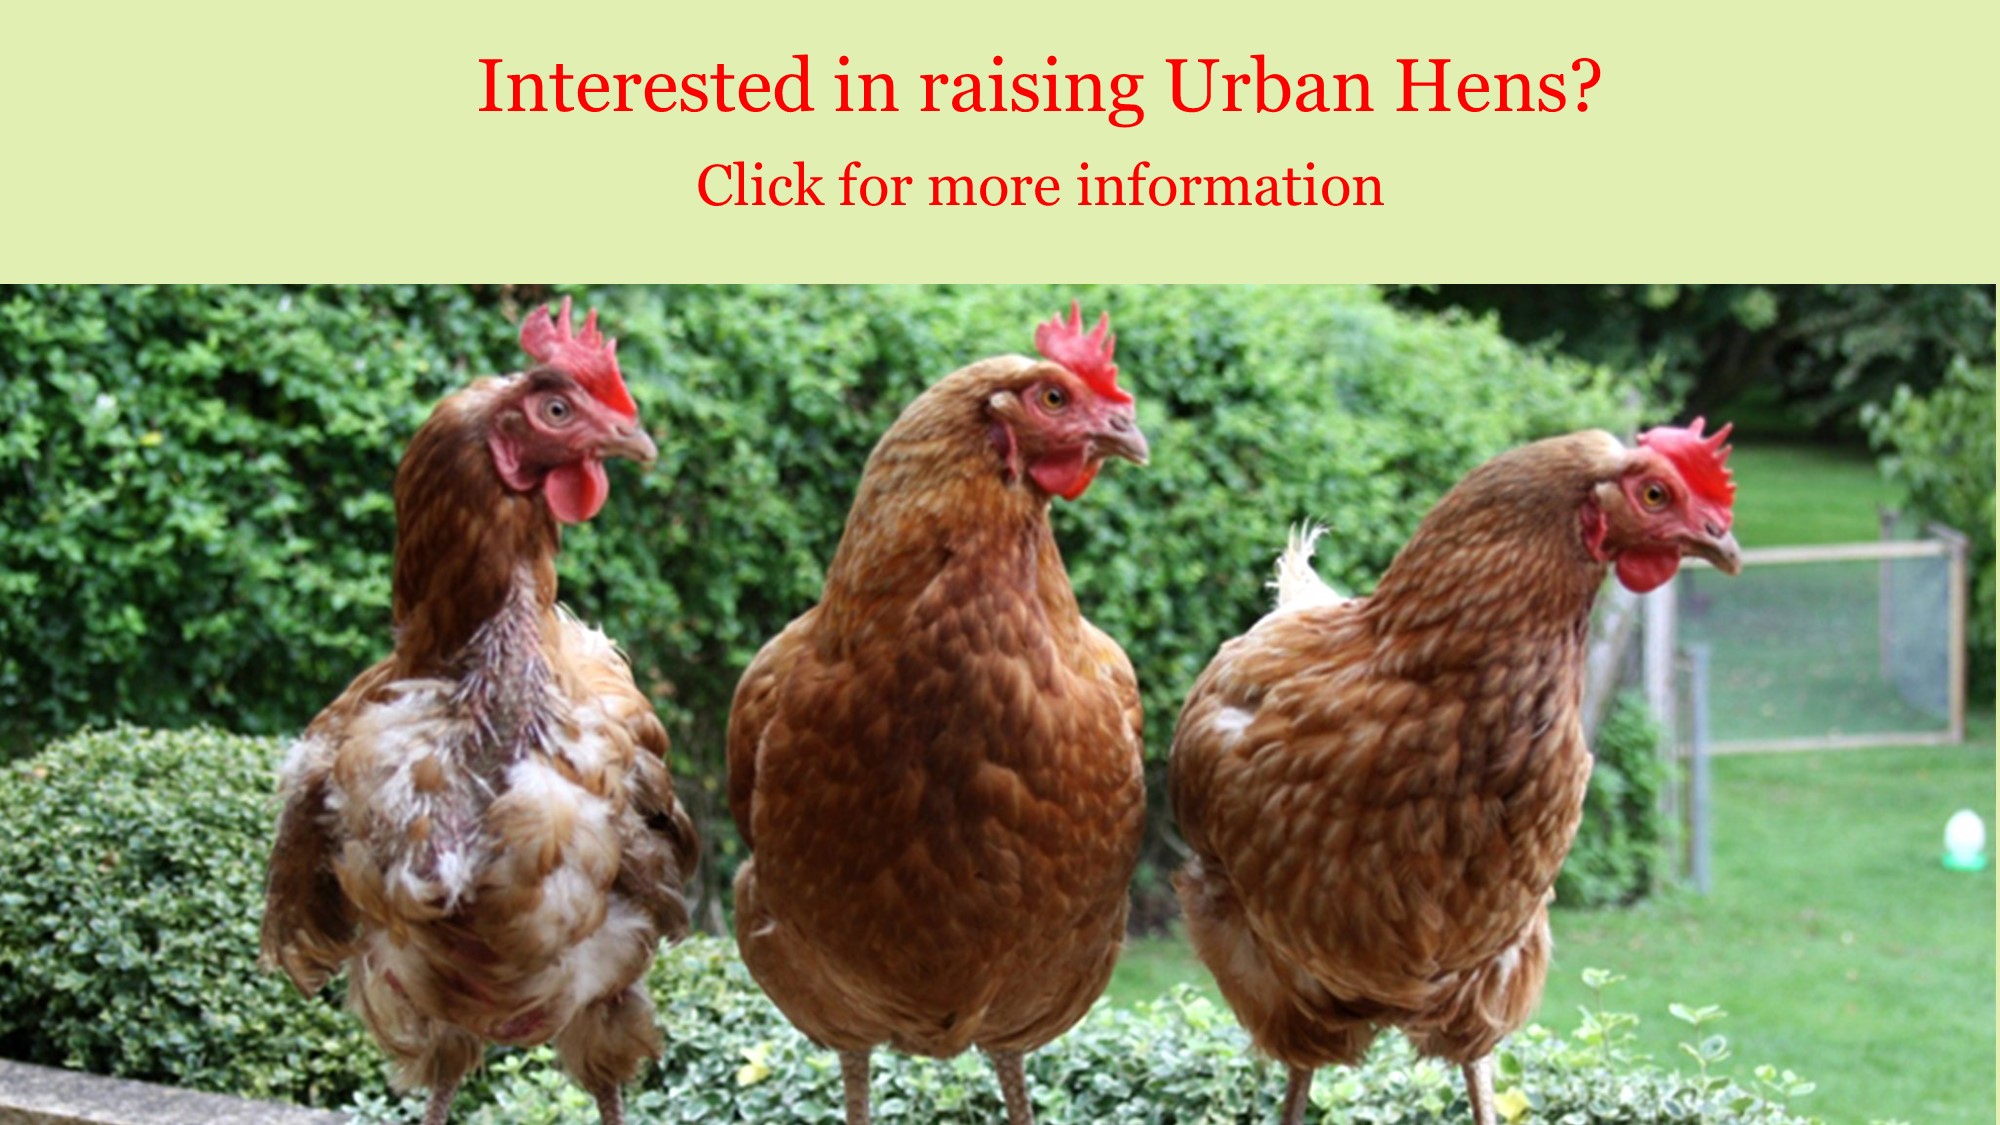 <div id=slideshow_title>Are you interested in raising Urban Hens?</div> <br>Click for more information on the application process.